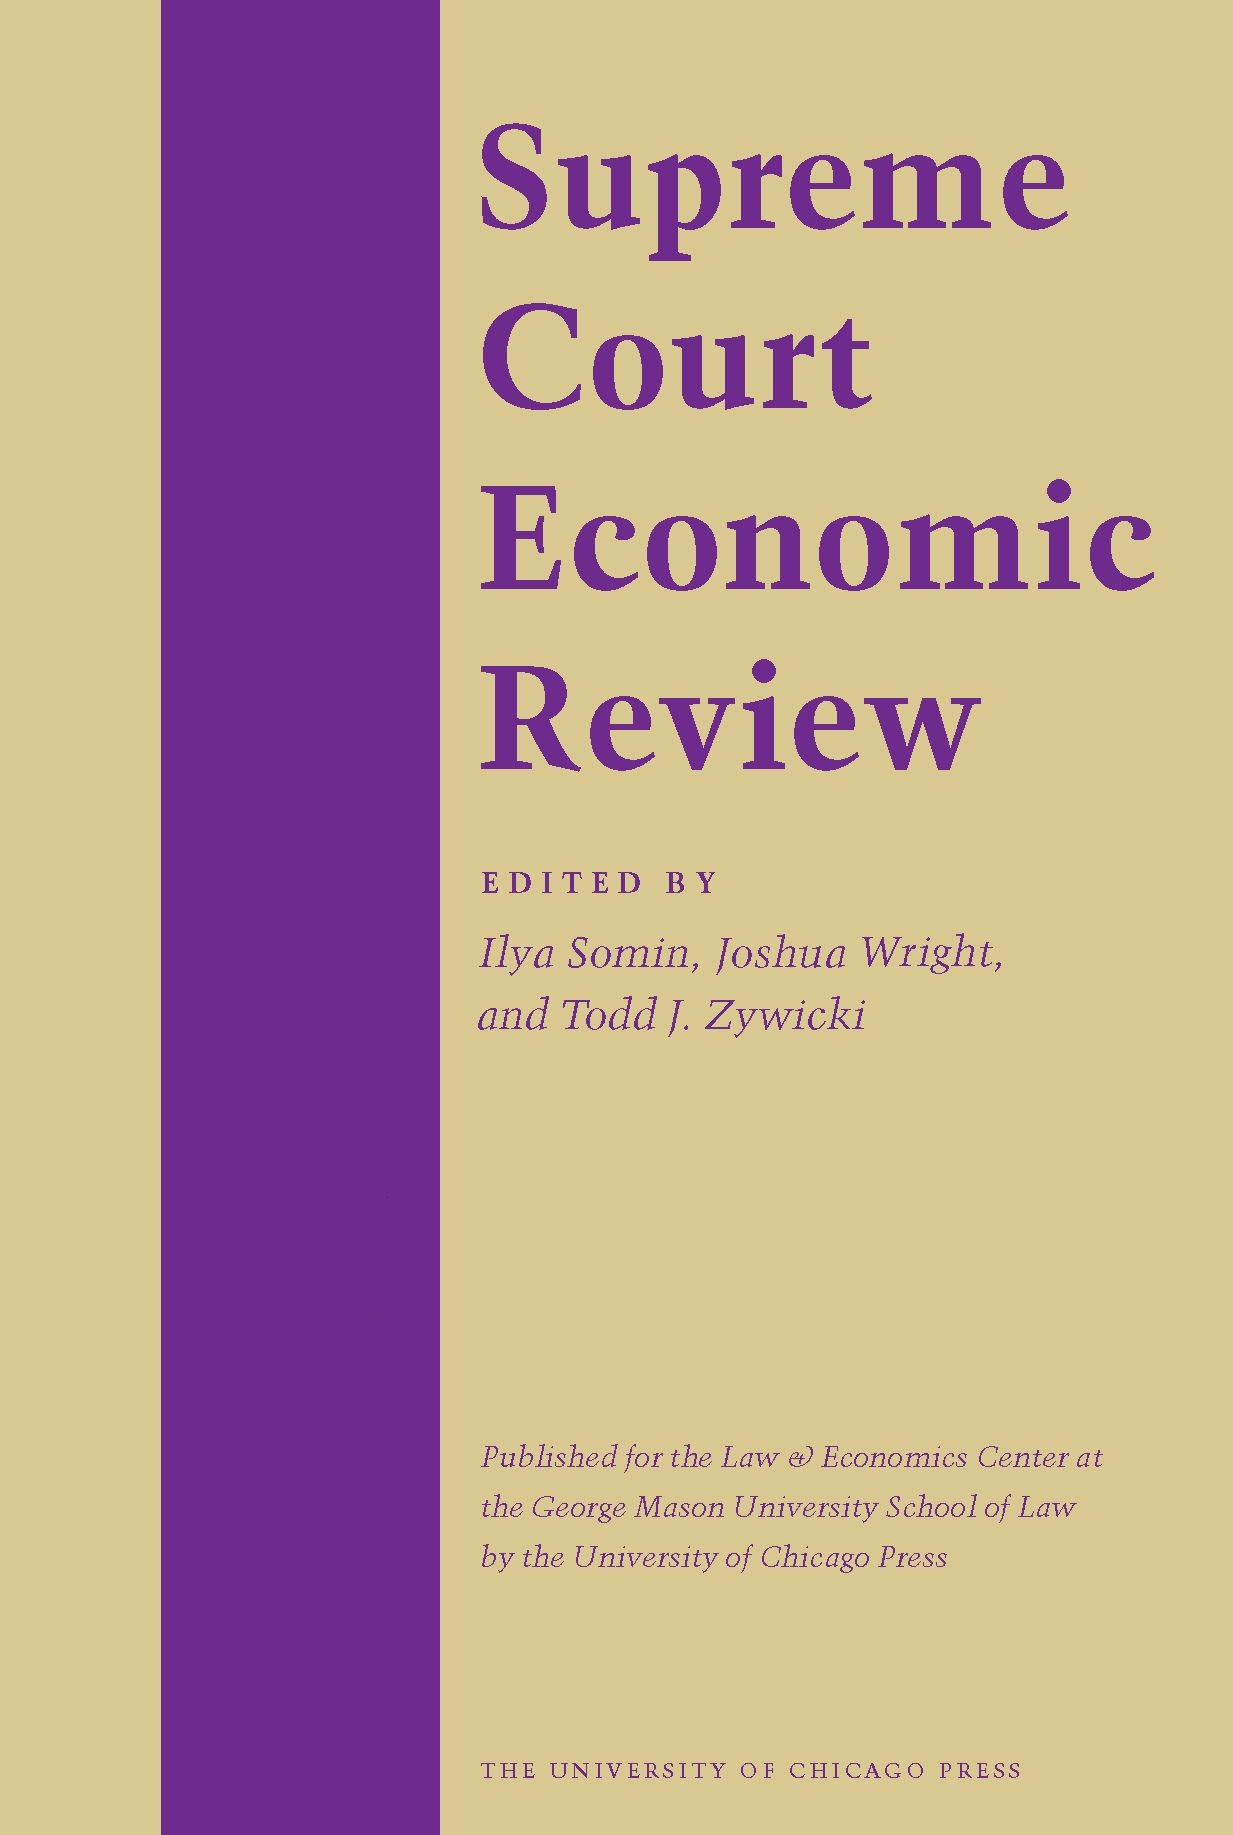 Supreme Court Economic Review, Volume 24